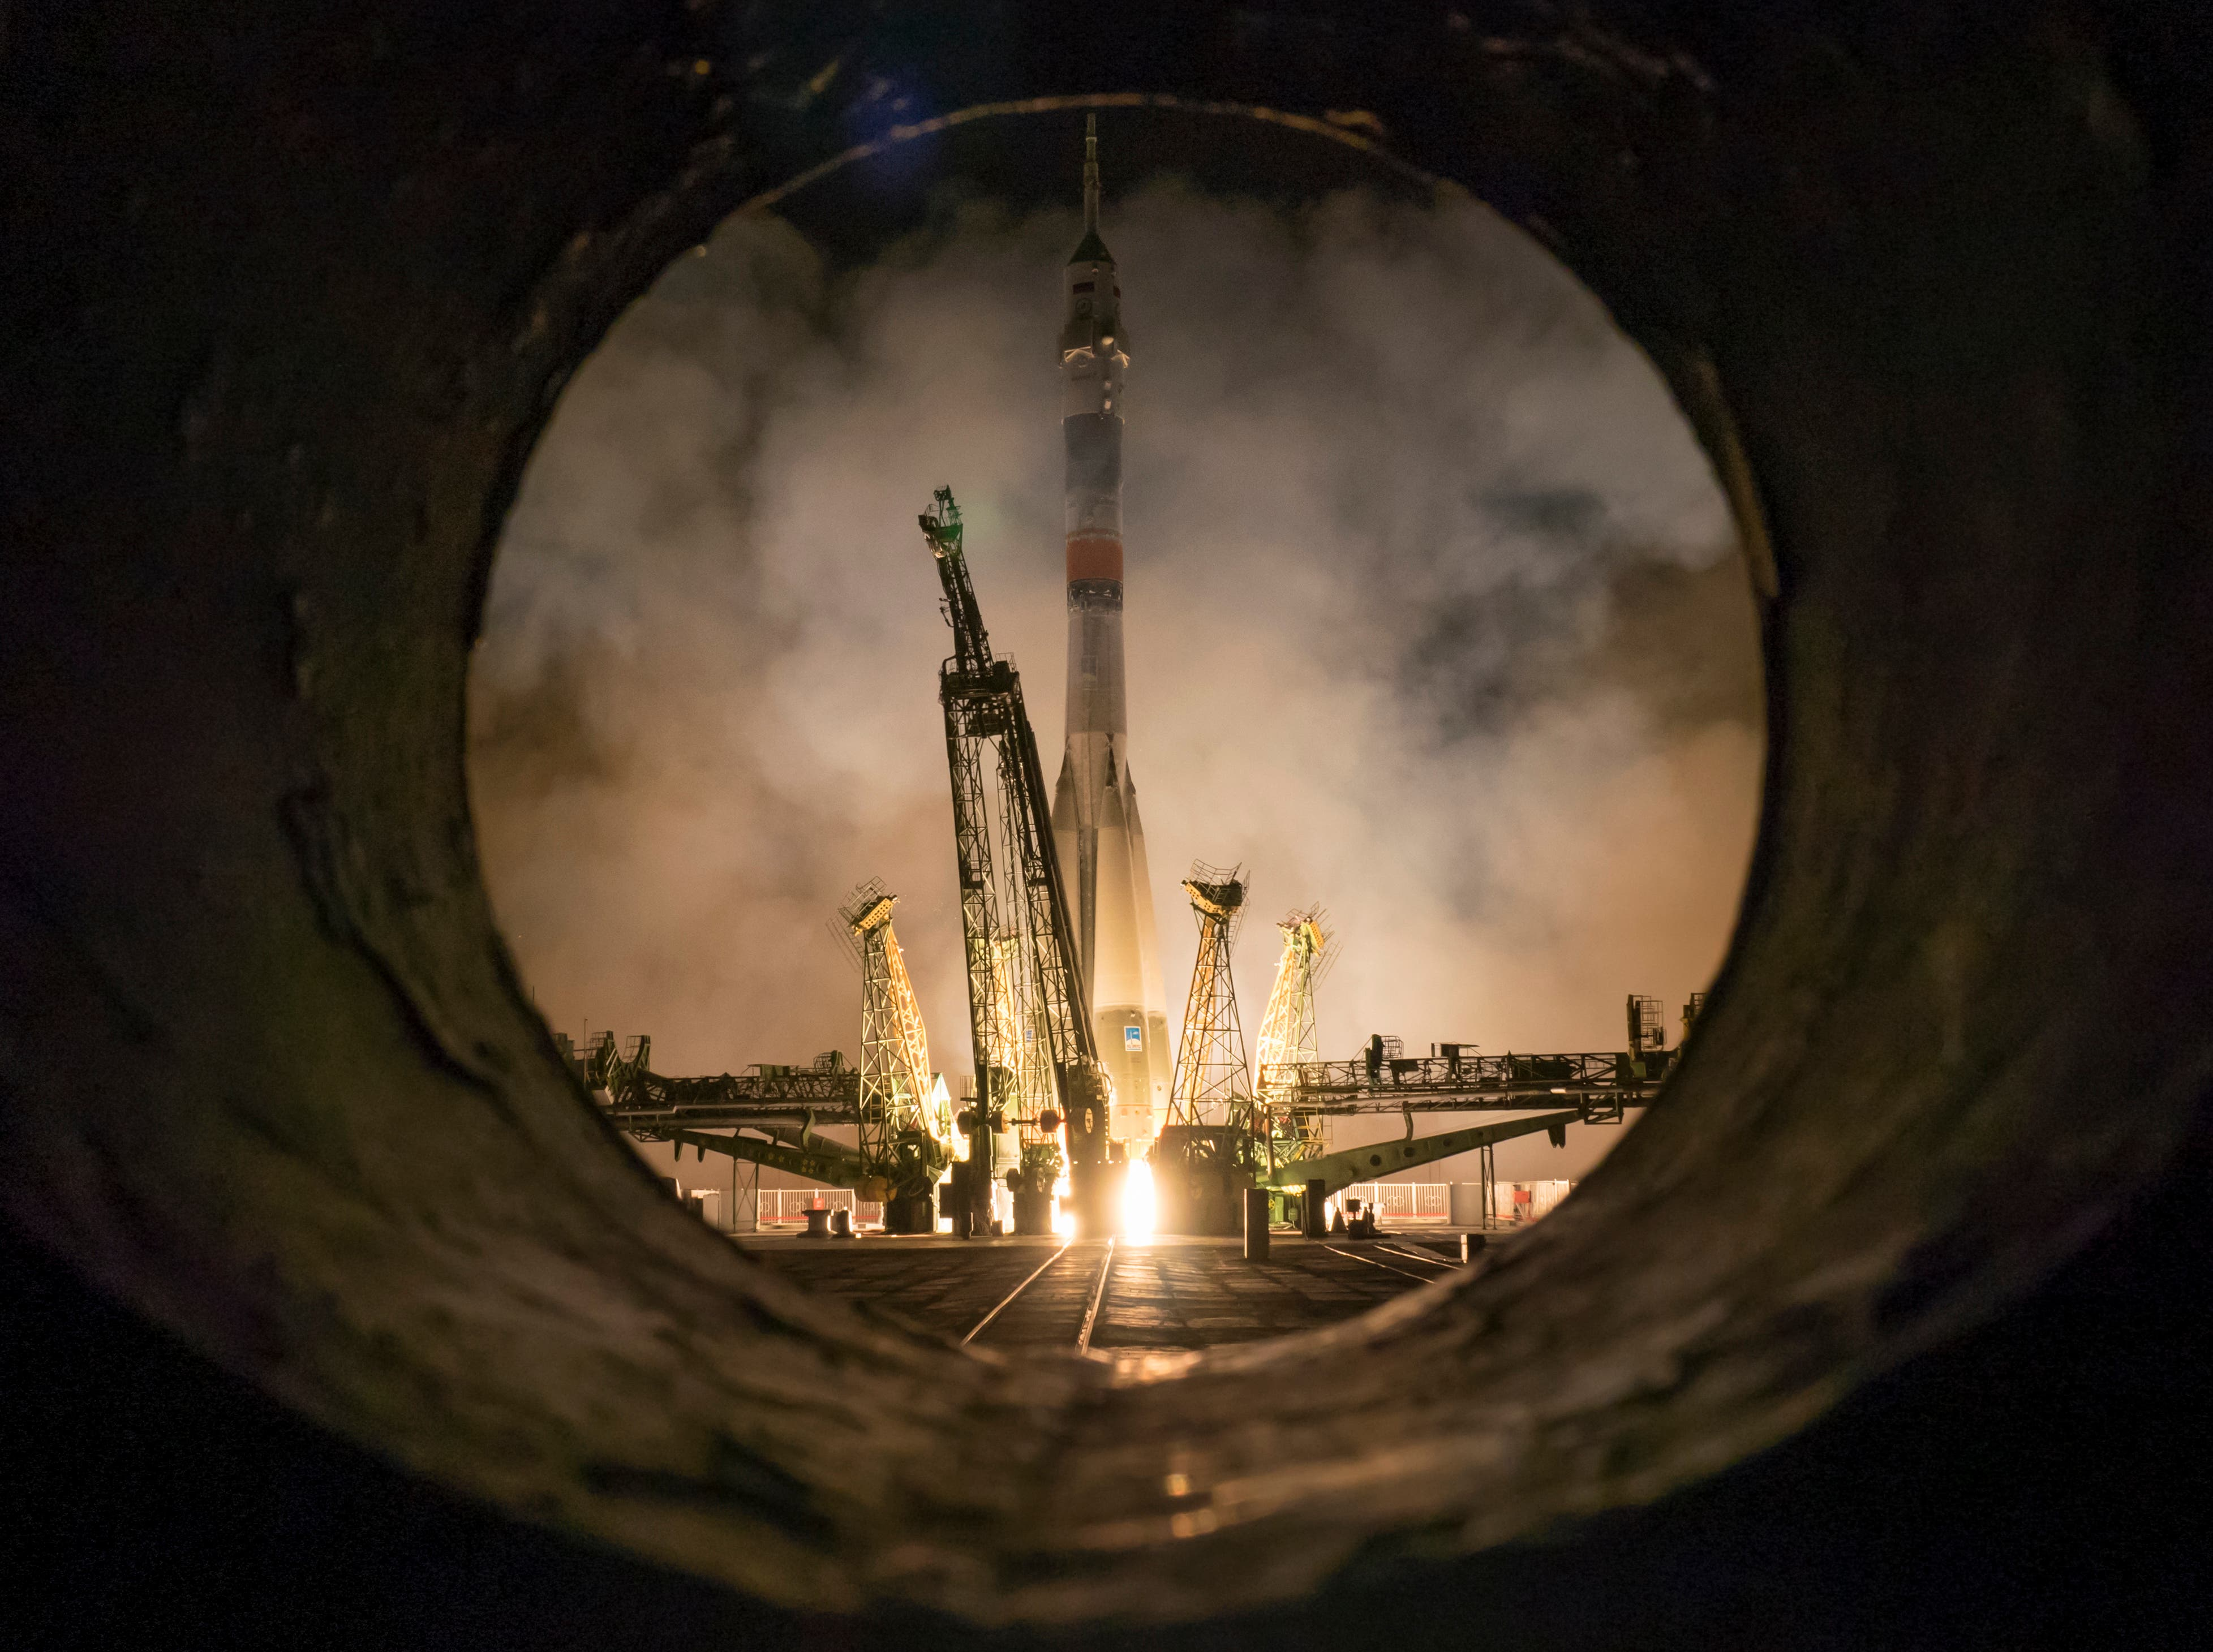 The Soyuz-FG rocket booster with Soyuz TMA-16M space ship carrying a new crew to the International Space Station, ISS, blasts off at the Russian leased Baikonur cosmodrome, Kazakhstan, March 28, 2015. (AP)